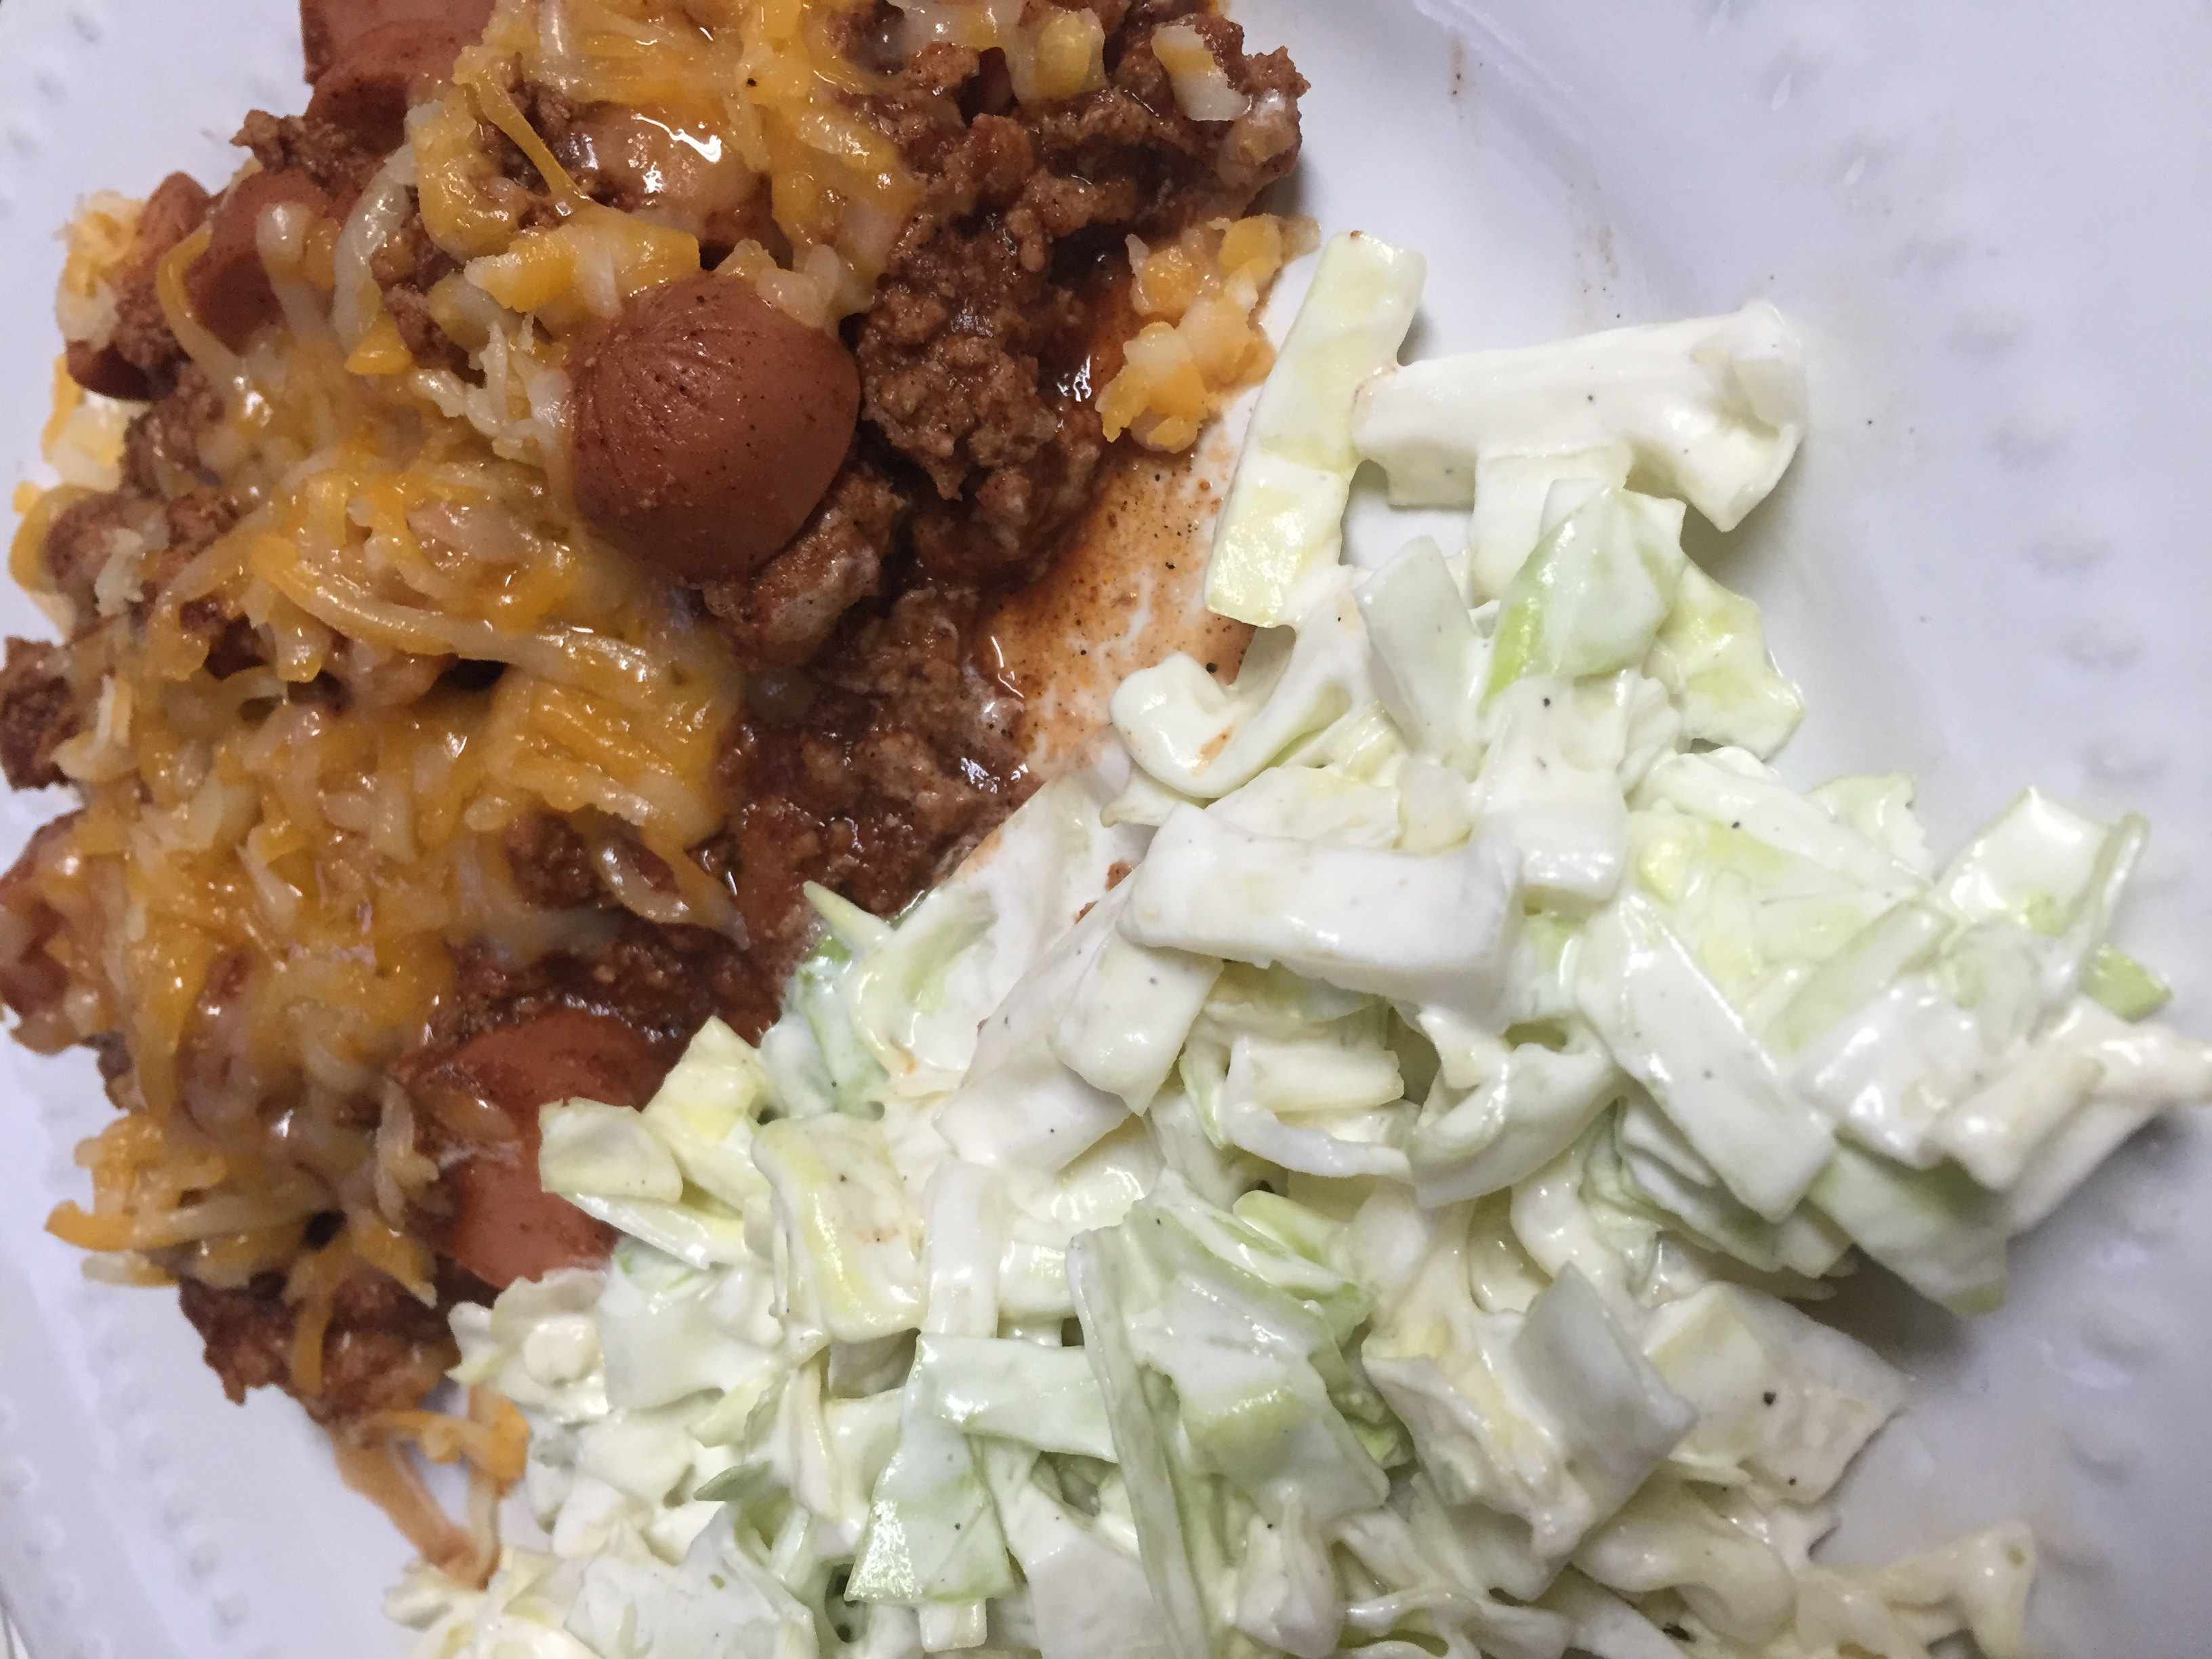 Keto Chili Dogs and Slaw